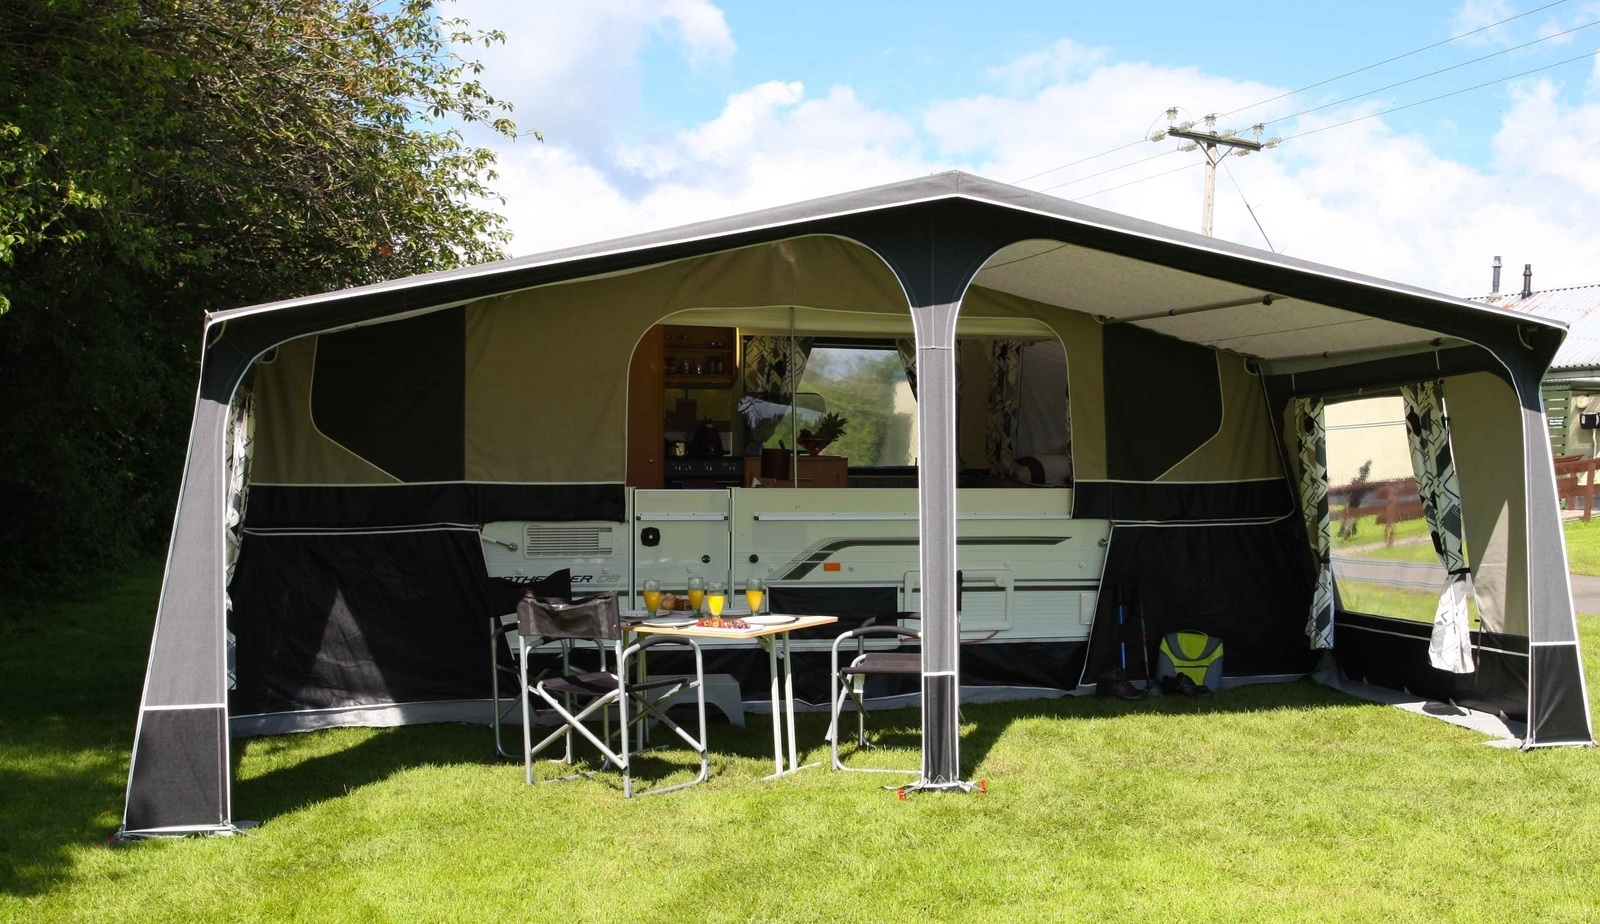 PENNINE PATHFINDER FOLDING CAMPER - Cover Image & Trailer Tent for Hire in Surrey from £25.0 u201cPENNINE PATHFINDER ...